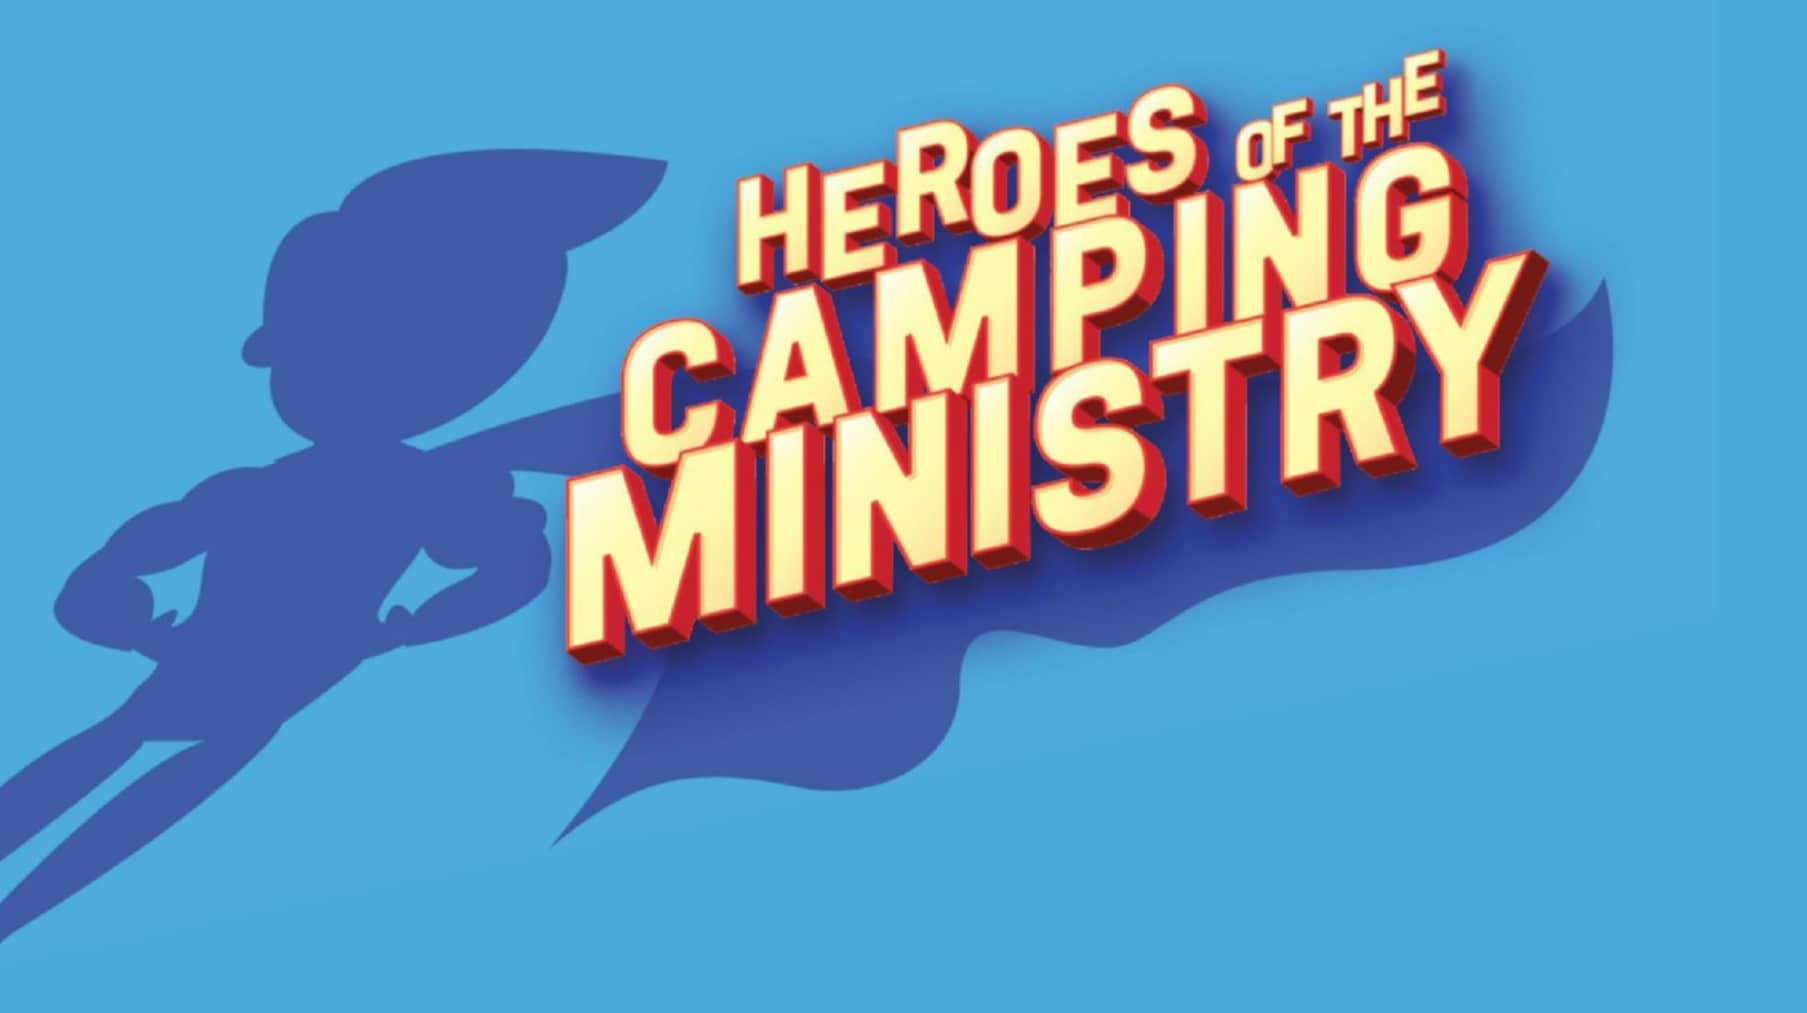 Heroes of the Camping Ministry